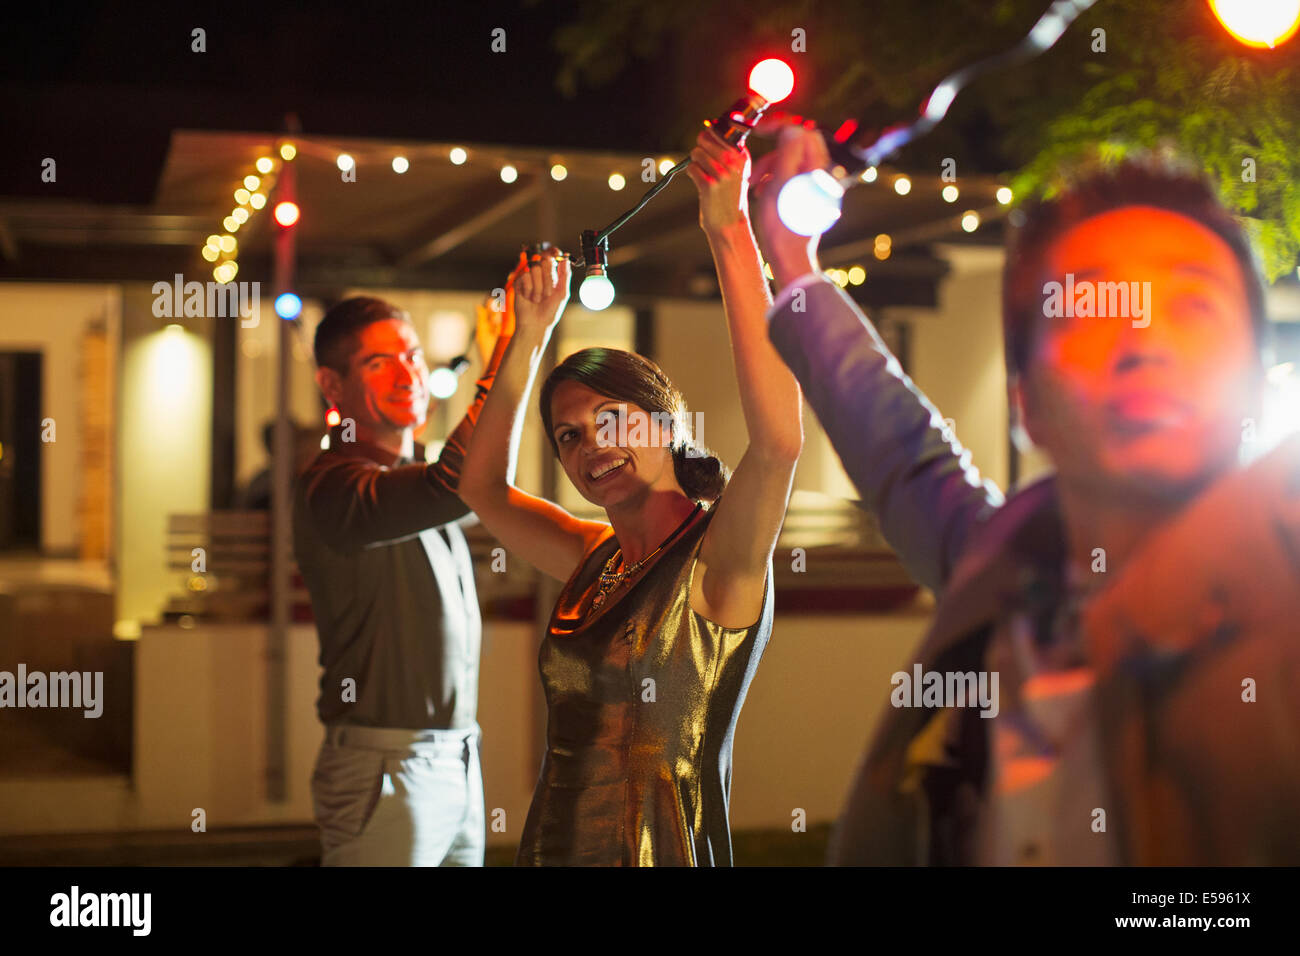 Friends stringing lights at outdoor party - Stock Image